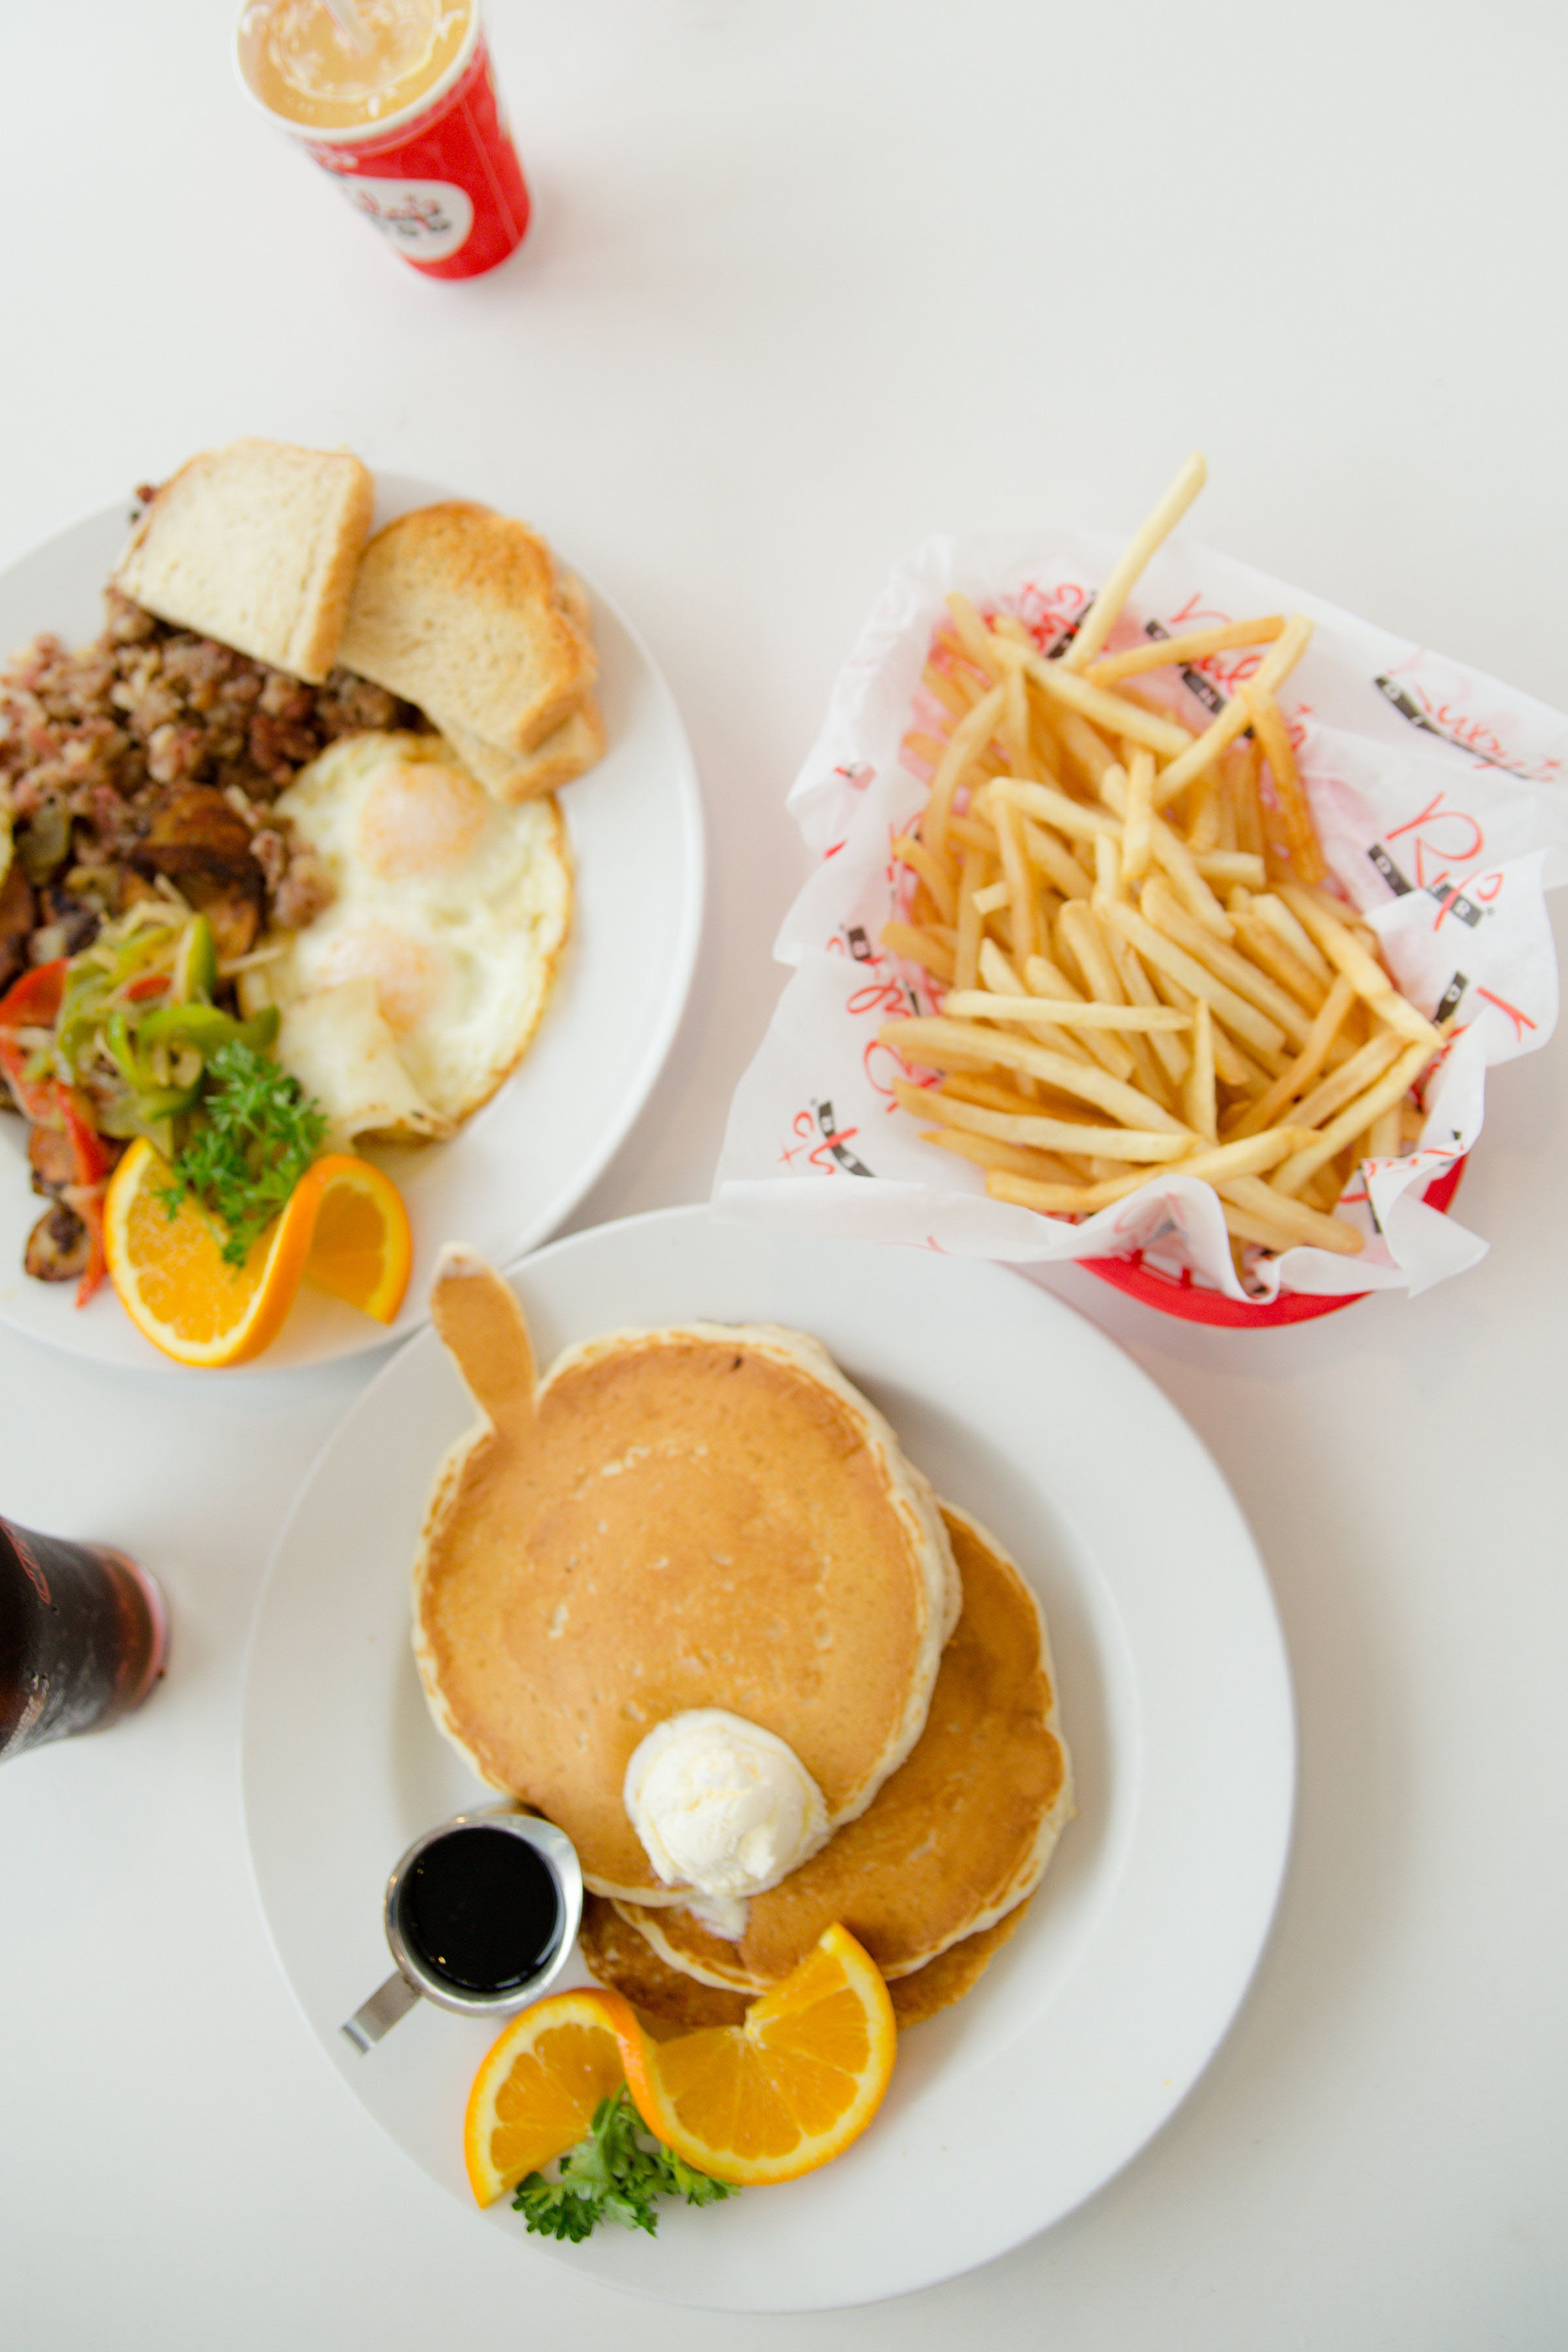 French fries, pancakes, and milkshakes for breakfast at Ruby's at the Oceanside Pier